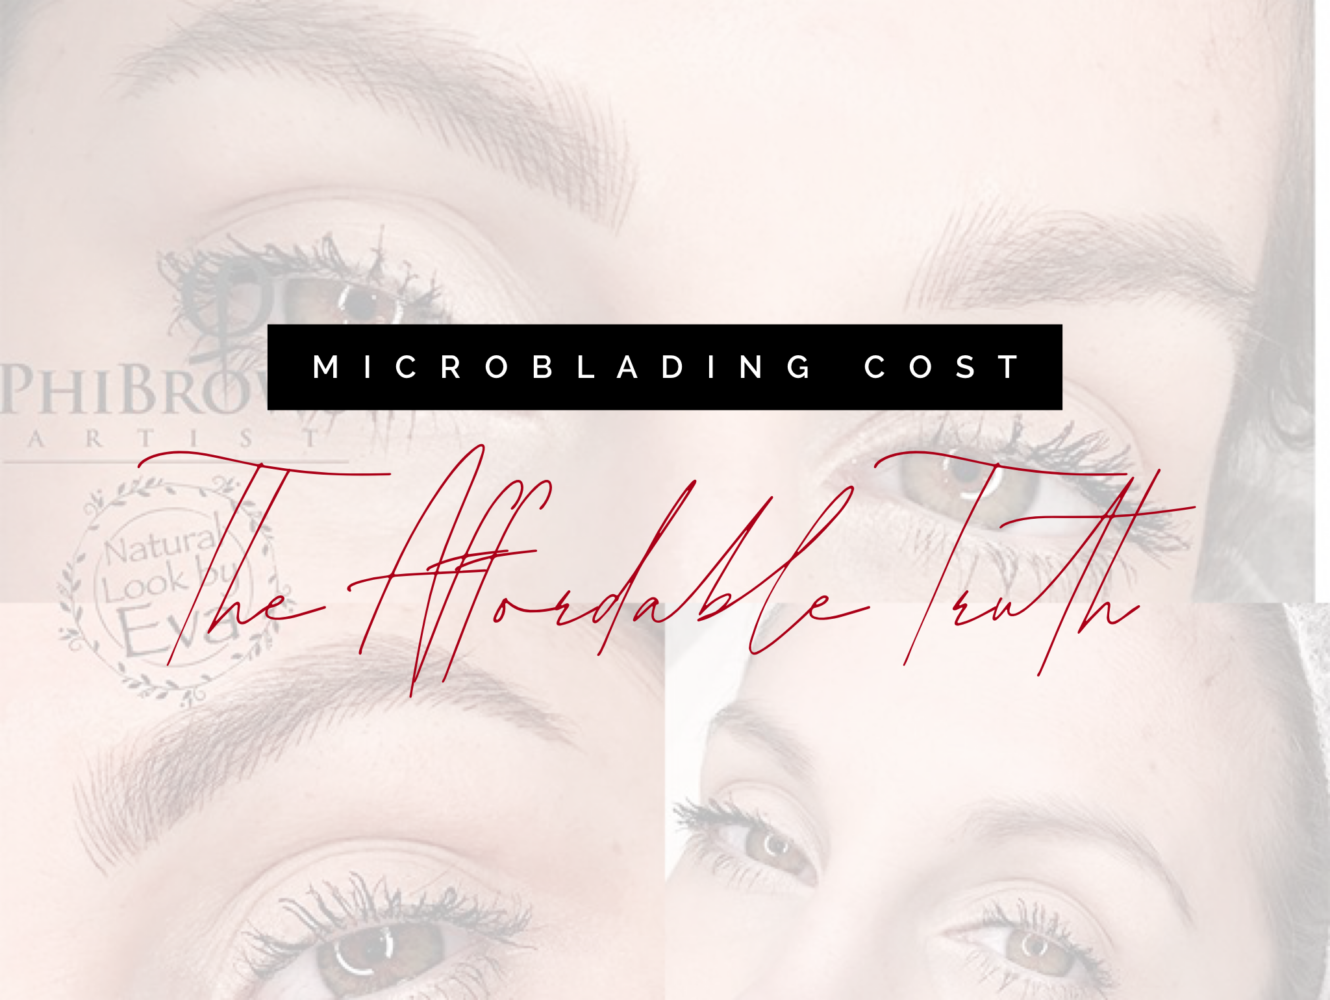 Microblading Cost: How Much, Is It Worth The Price & The